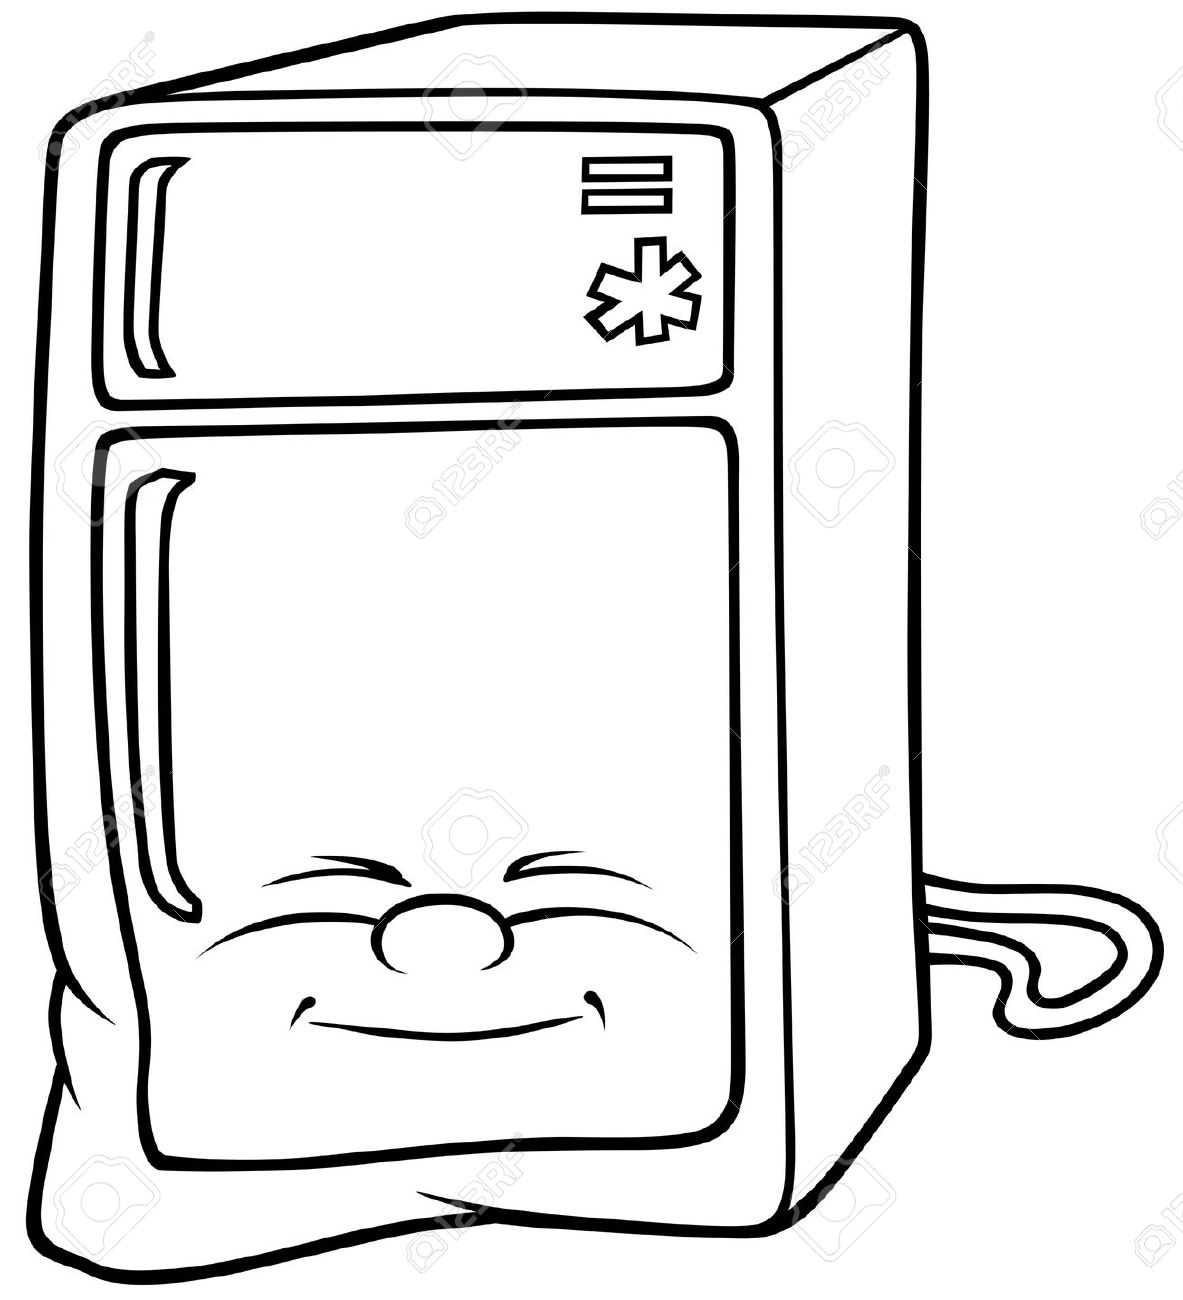 Artwork on the frig clipart image royalty free download Fridge Clipart | Free download best Fridge Clipart on ClipArtMag.com image royalty free download